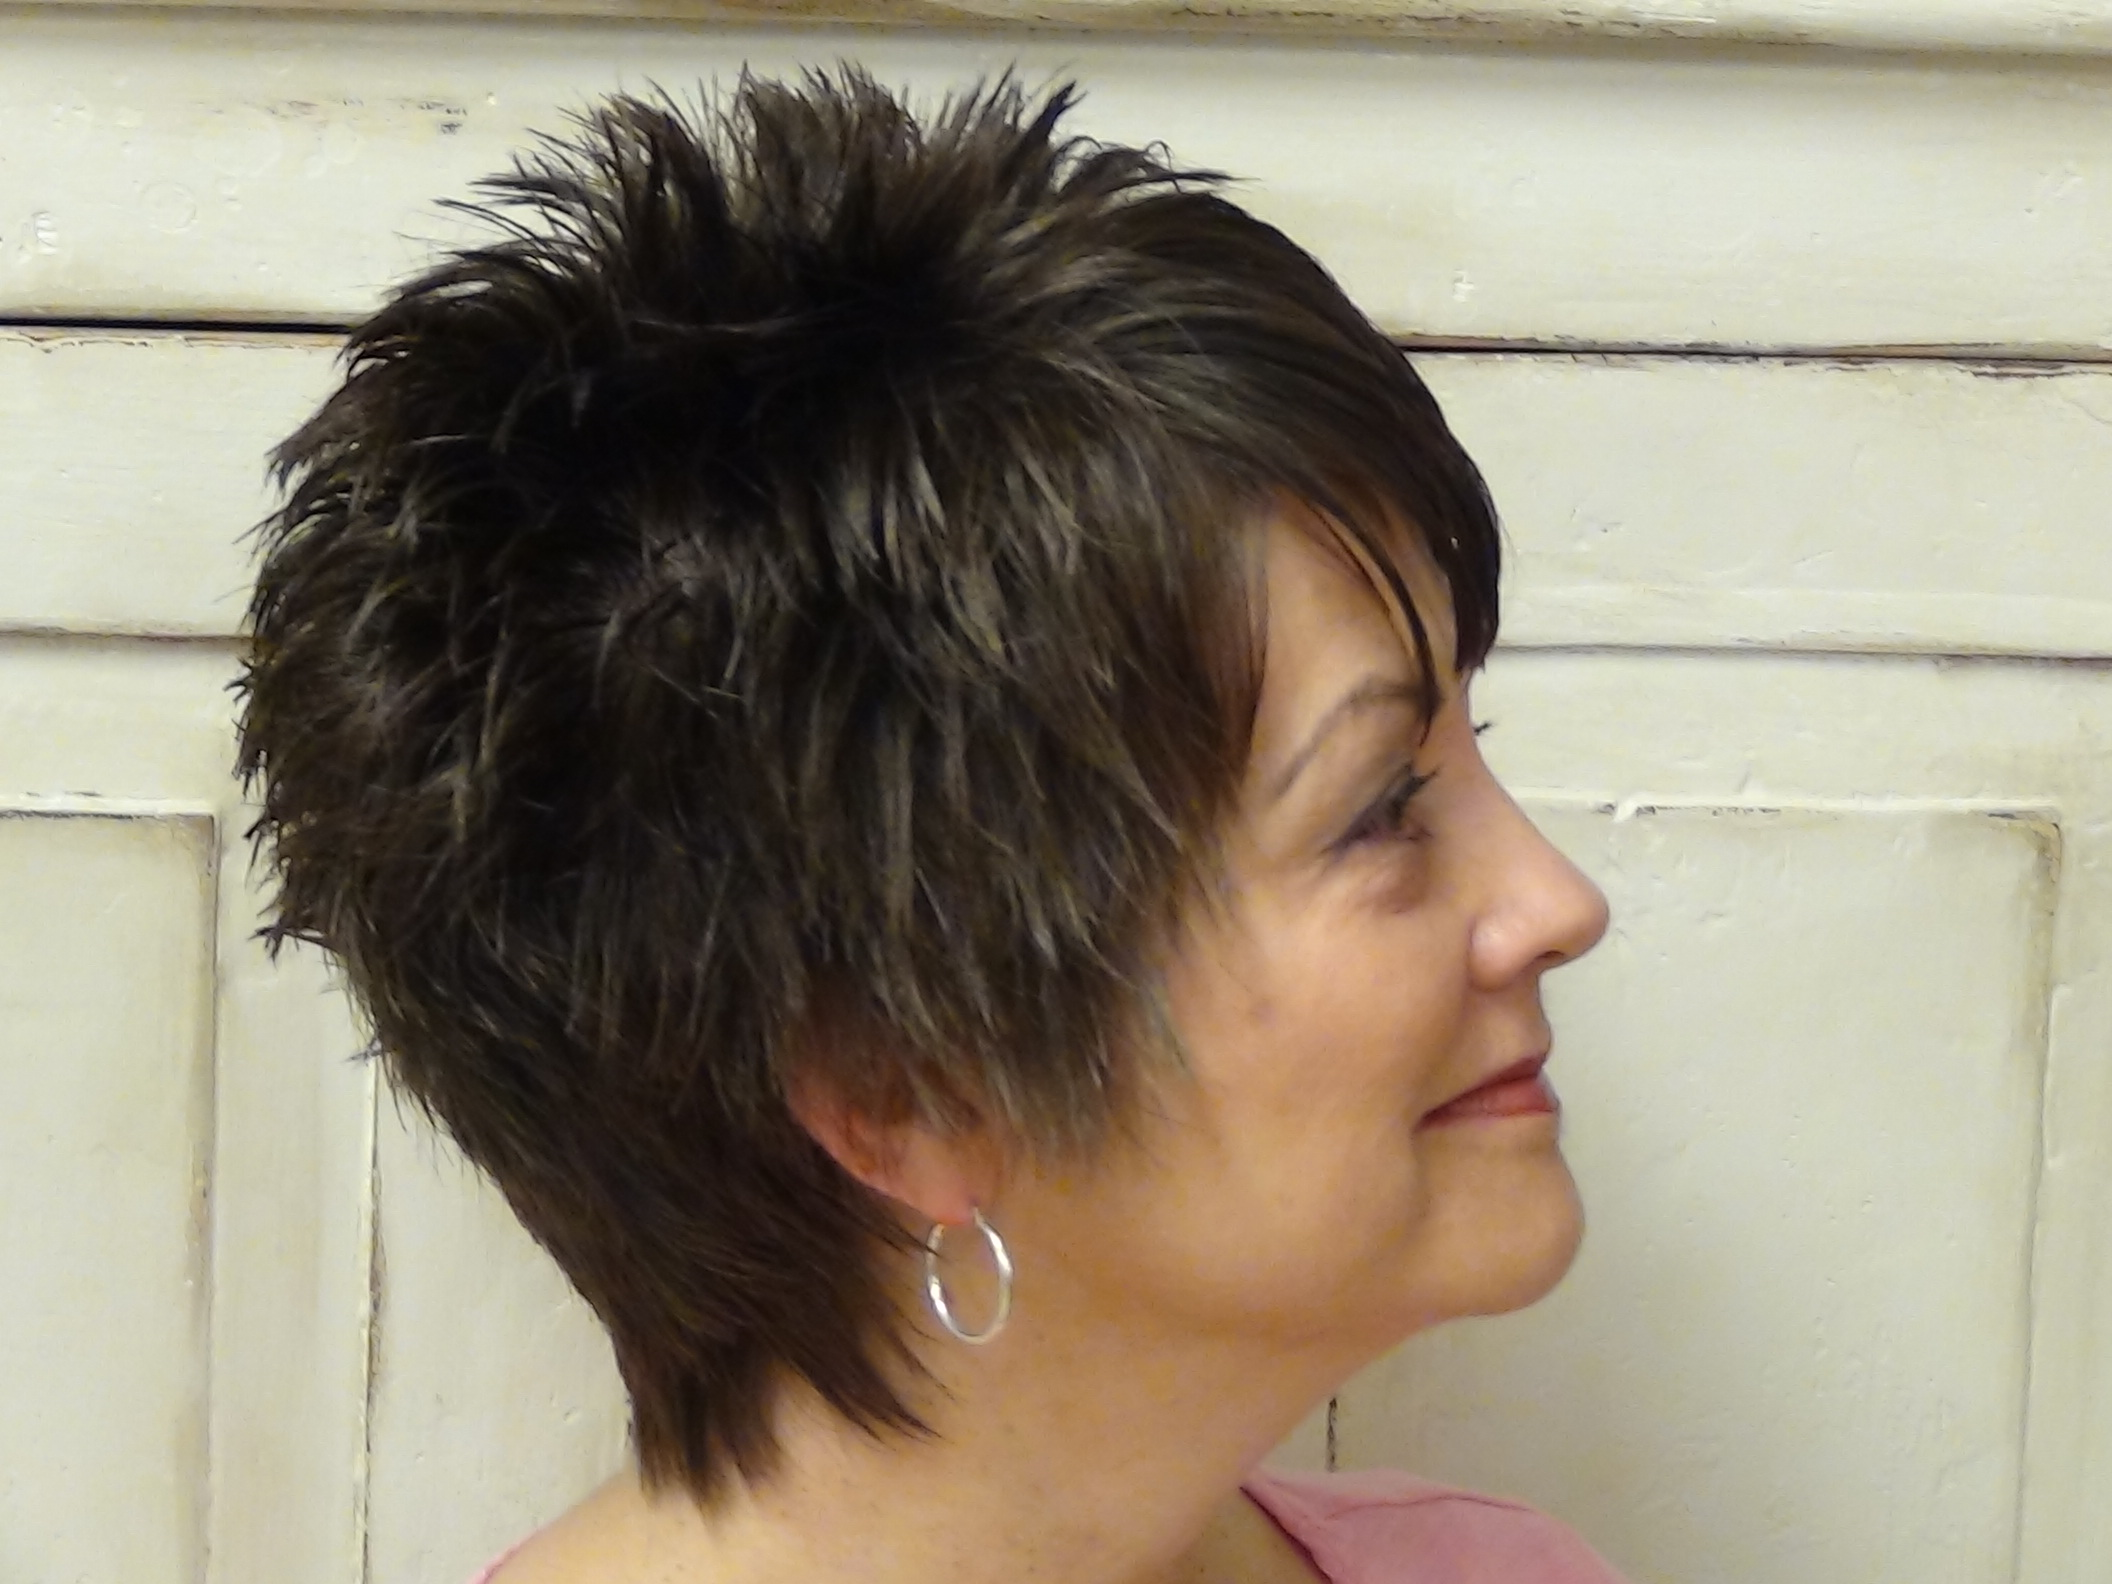 about girls hairstyles view all posts by girls hairstyles